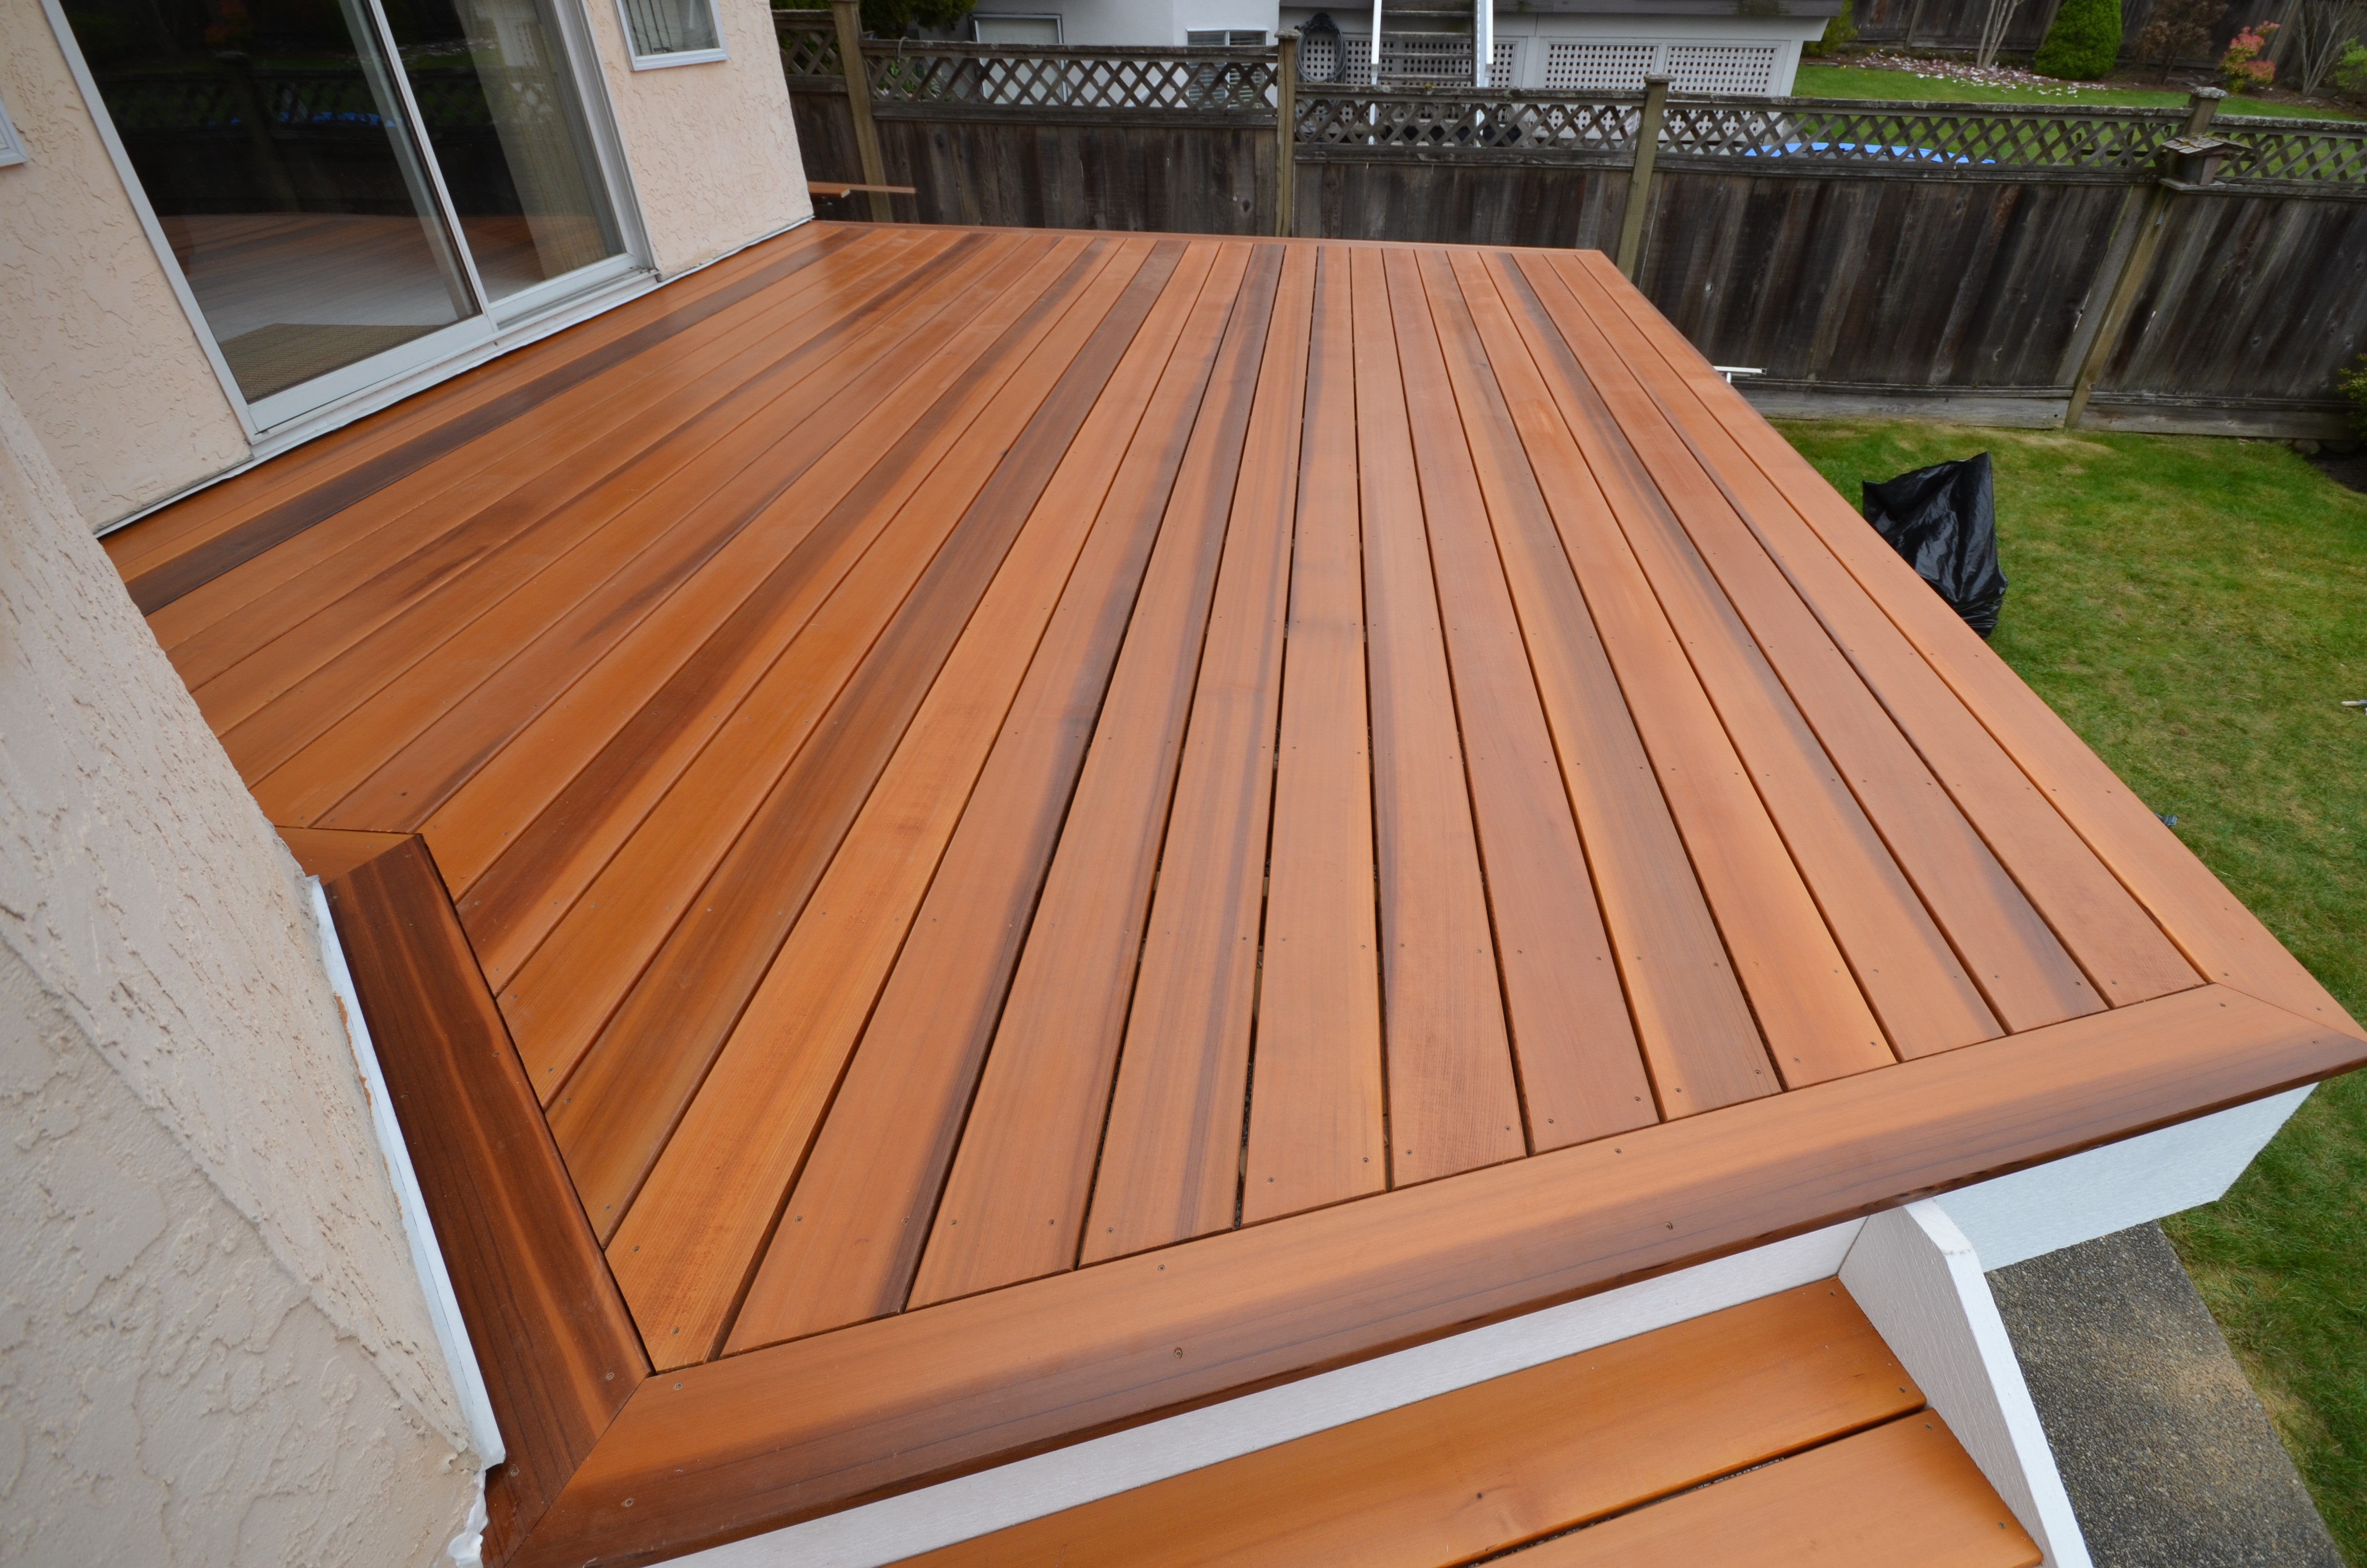 Nothing Is As Clic West Coast A Beautiful Cedar Deck The Problem Was That When You Need To Be Waterproof Typically Weren T Able Have